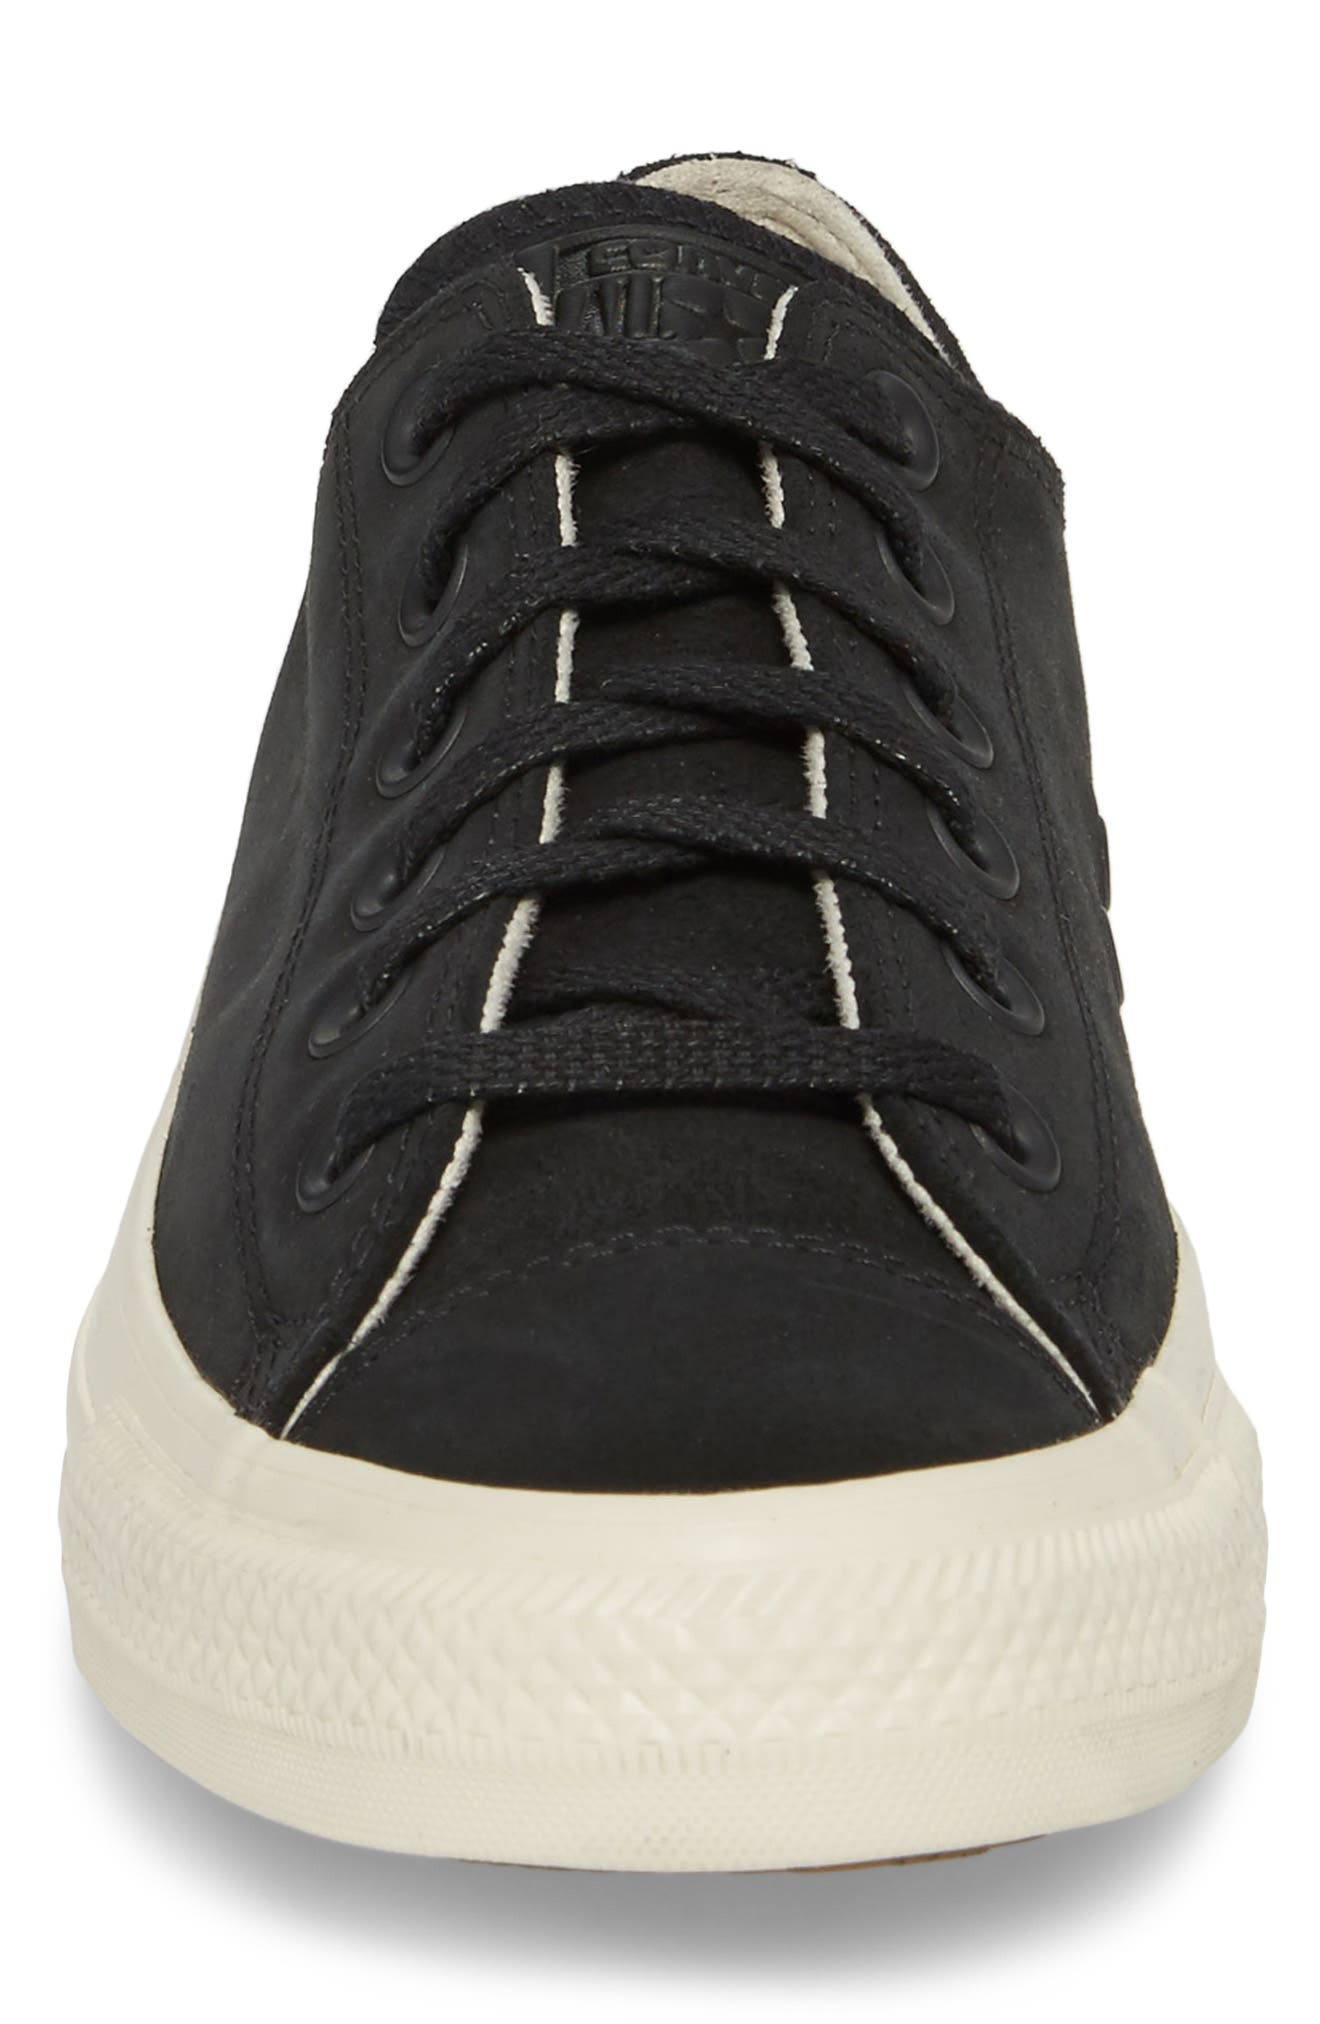 Chuck Taylor<sup>®</sup> All Star<sup>®</sup> Low Top Sneaker,                             Alternate thumbnail 4, color,                             Black Leather